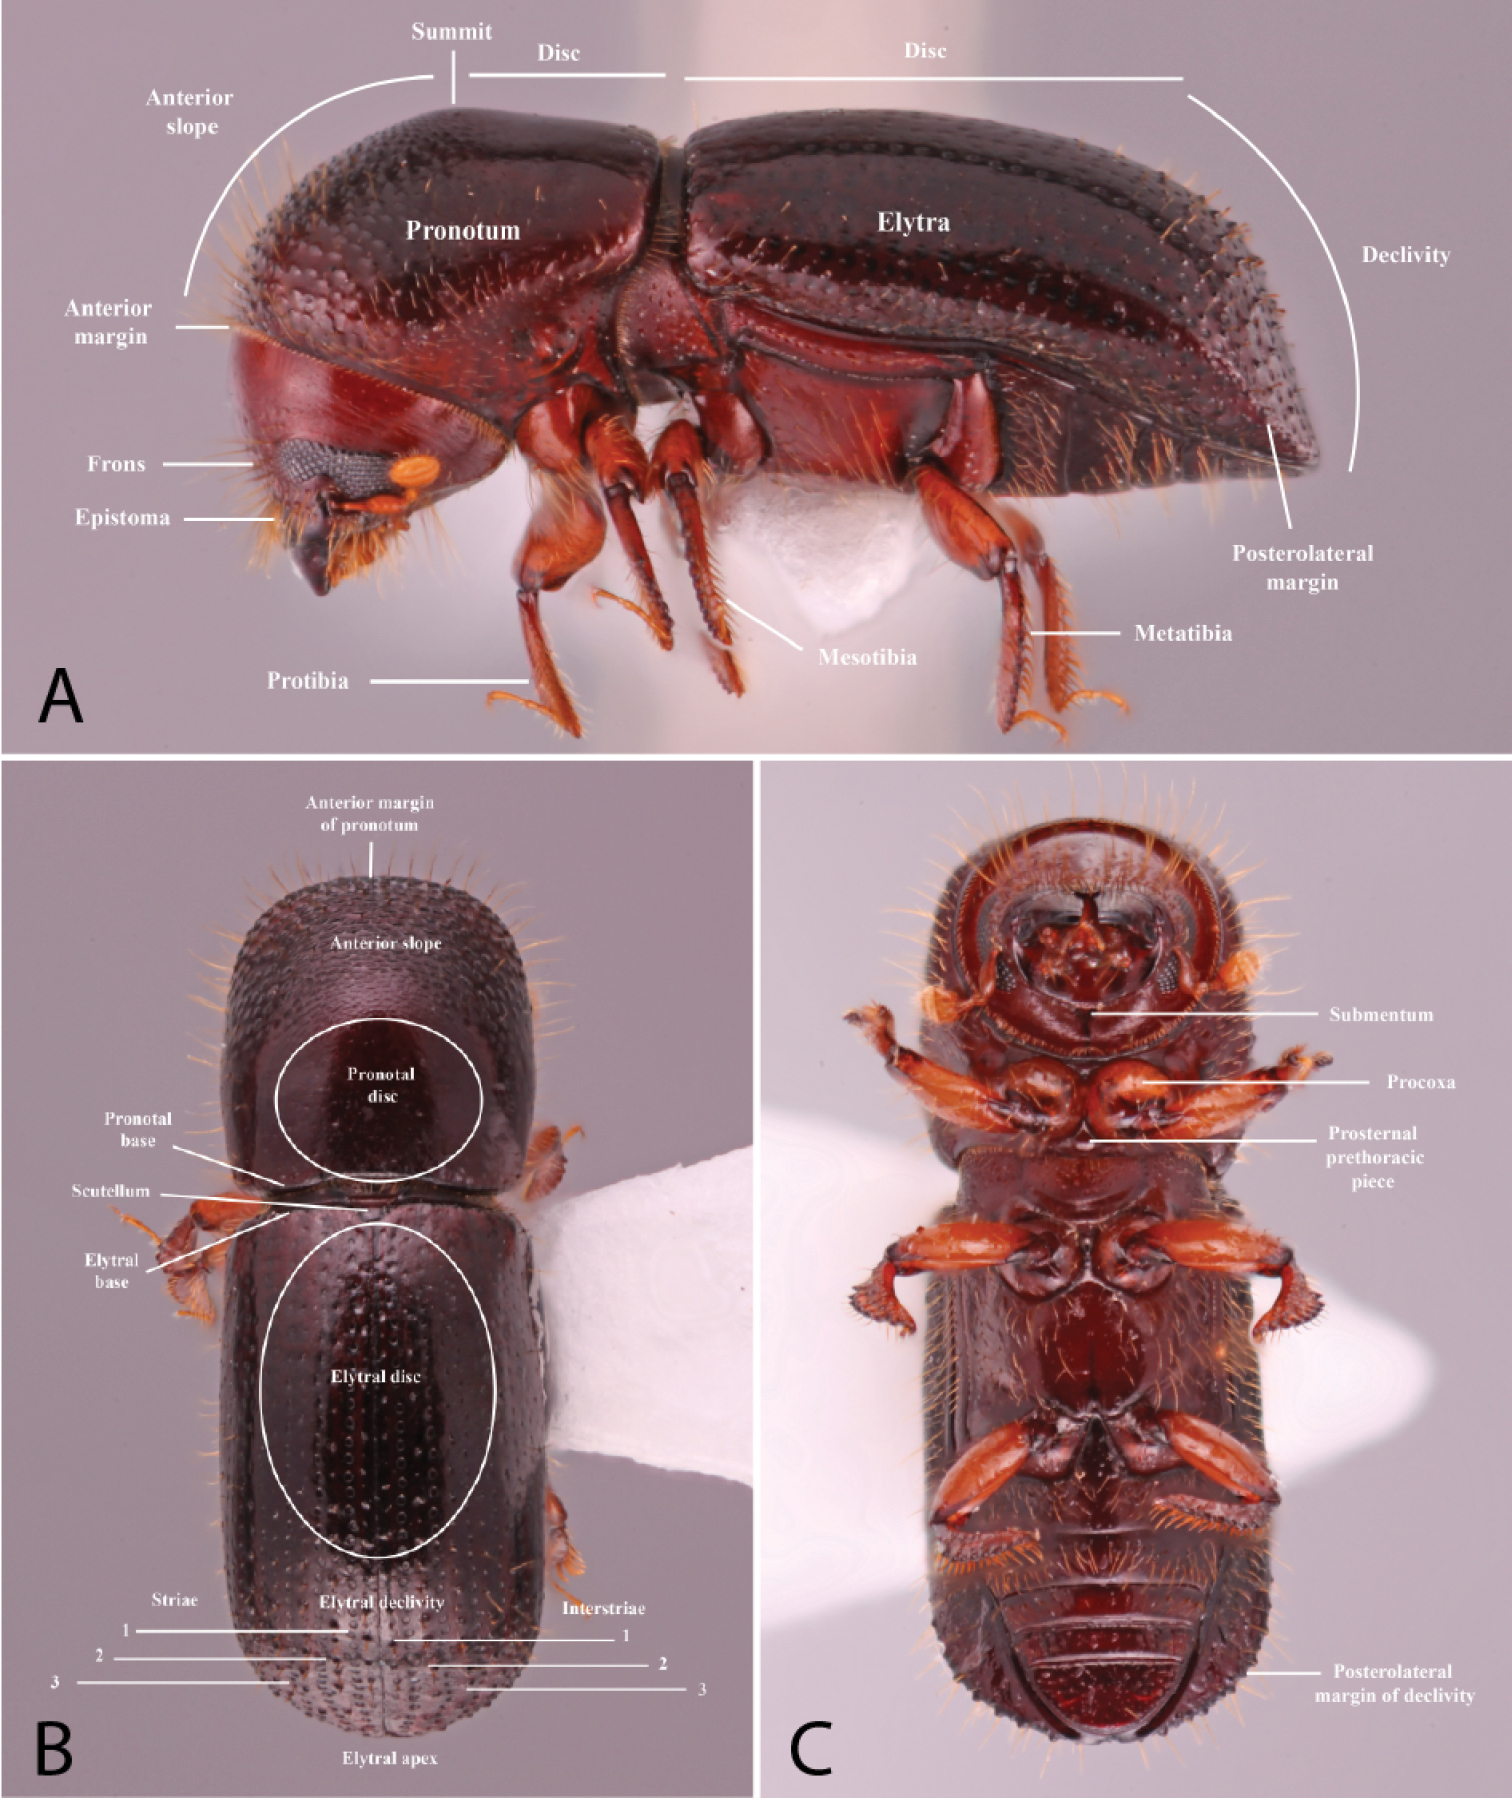 A Monograph Of The Xyleborini Coleoptera Curculionidae Scolytinae Of The Indochinese Peninsula Except Malaysia And China I thought that clamouring tin can was the last, but here we go again. curculionidae scolytinae